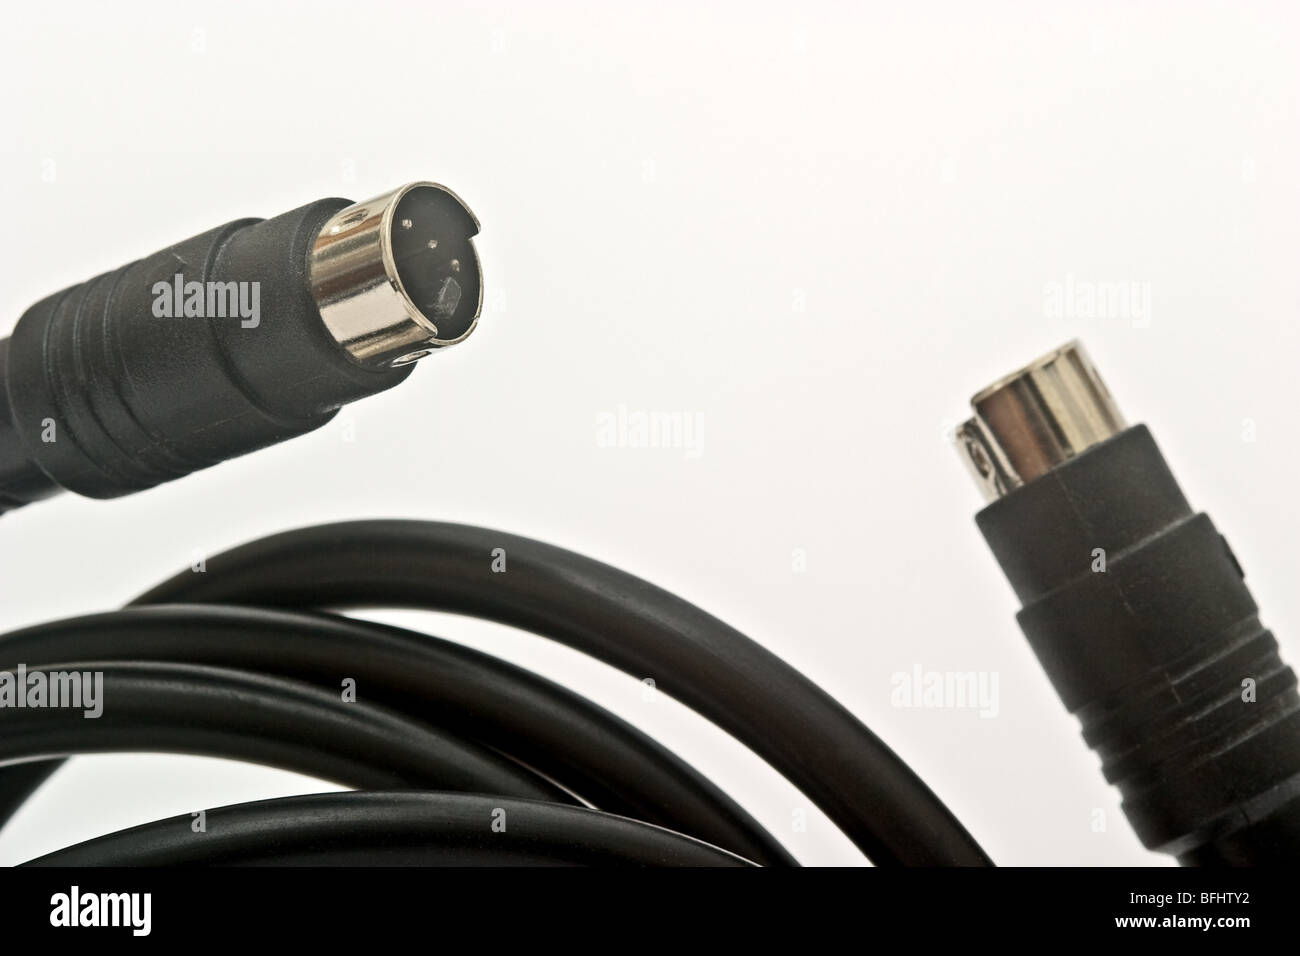 Two Black And Metal Audio Video Connectors Stock Photo 26822966 Alamy